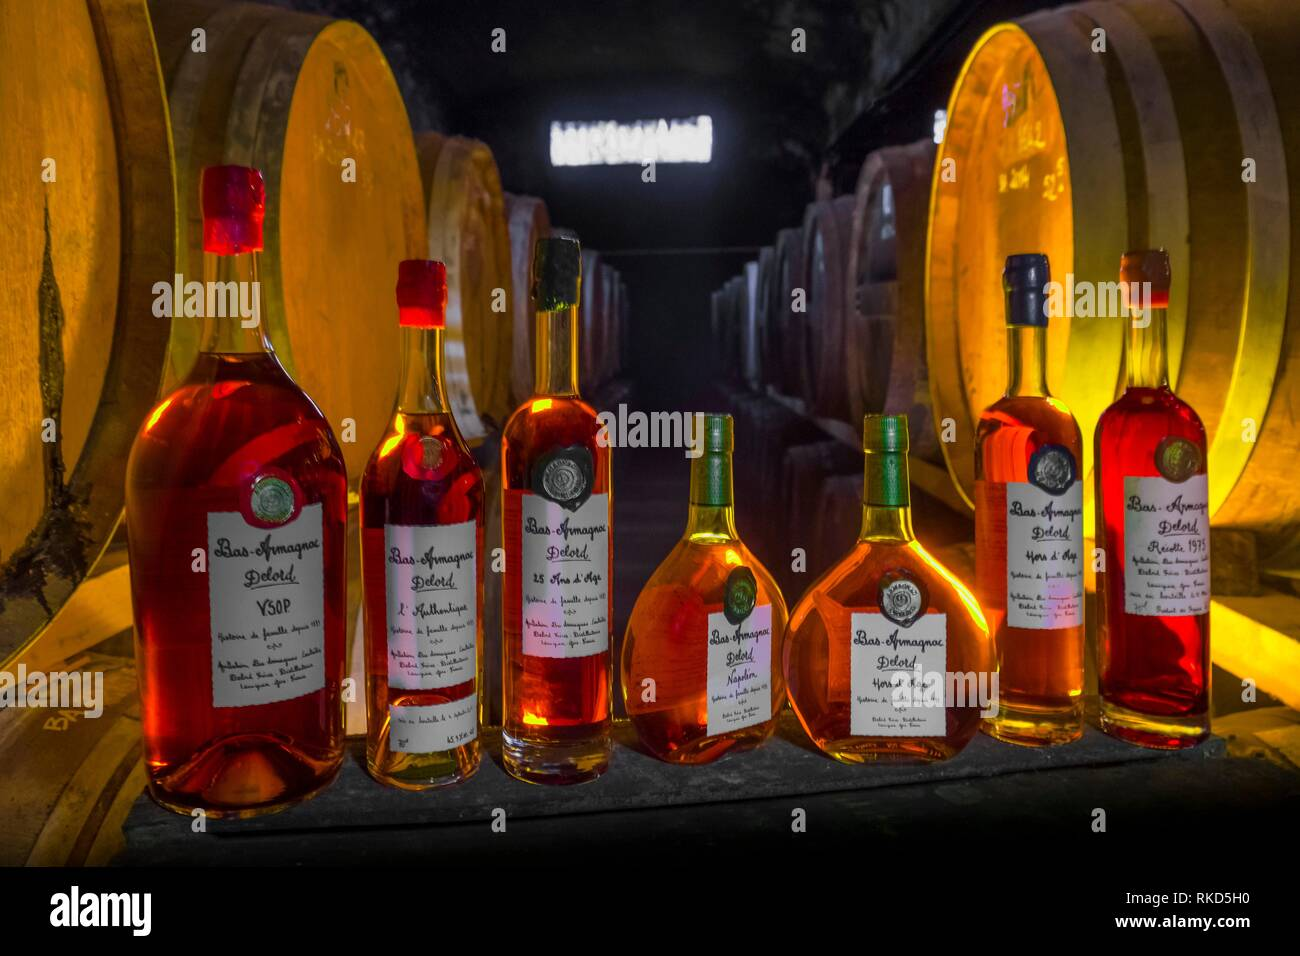 France, Occitanie, Gers, at the ''Armagnac Delord Estate'' at Lannepax. the many Armagnacs from the Estate. - Stock Image